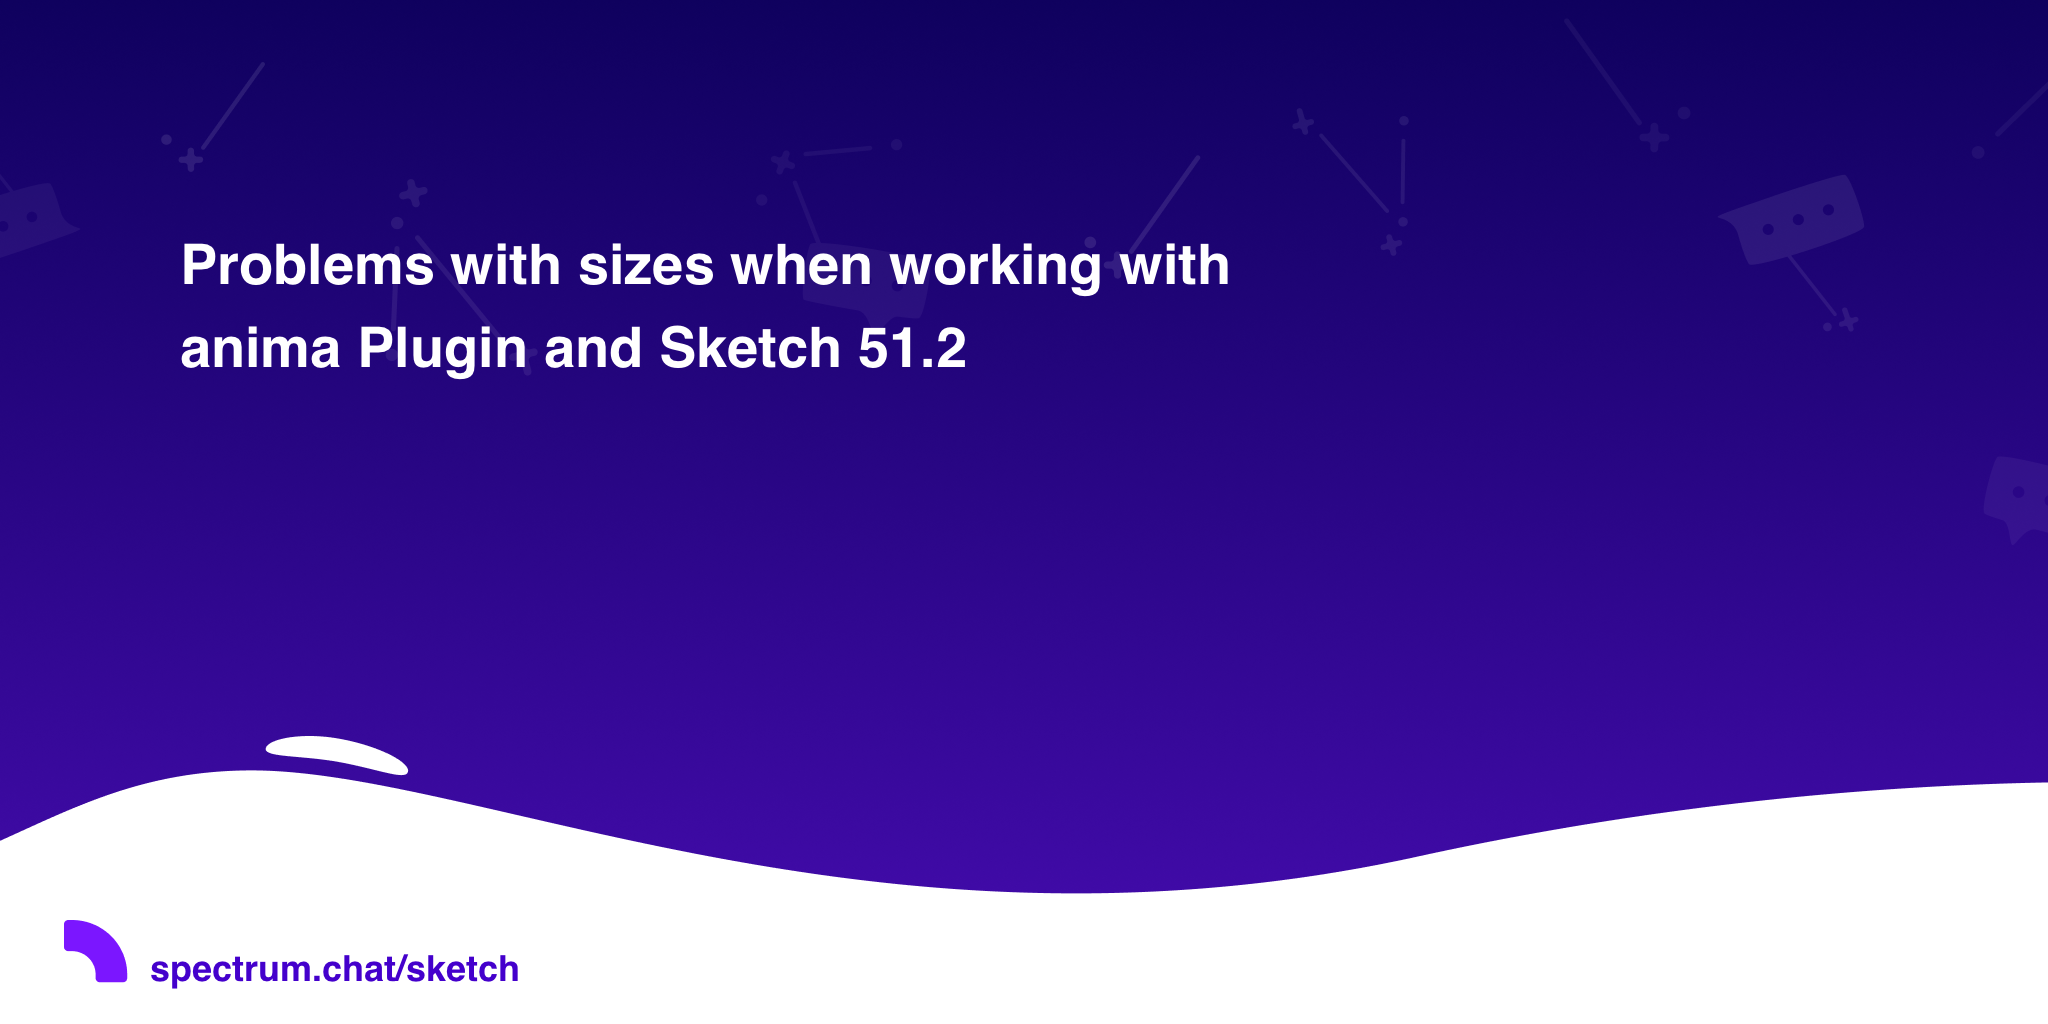 Problems with sizes when working with anima Plugin and Sketch 51 2